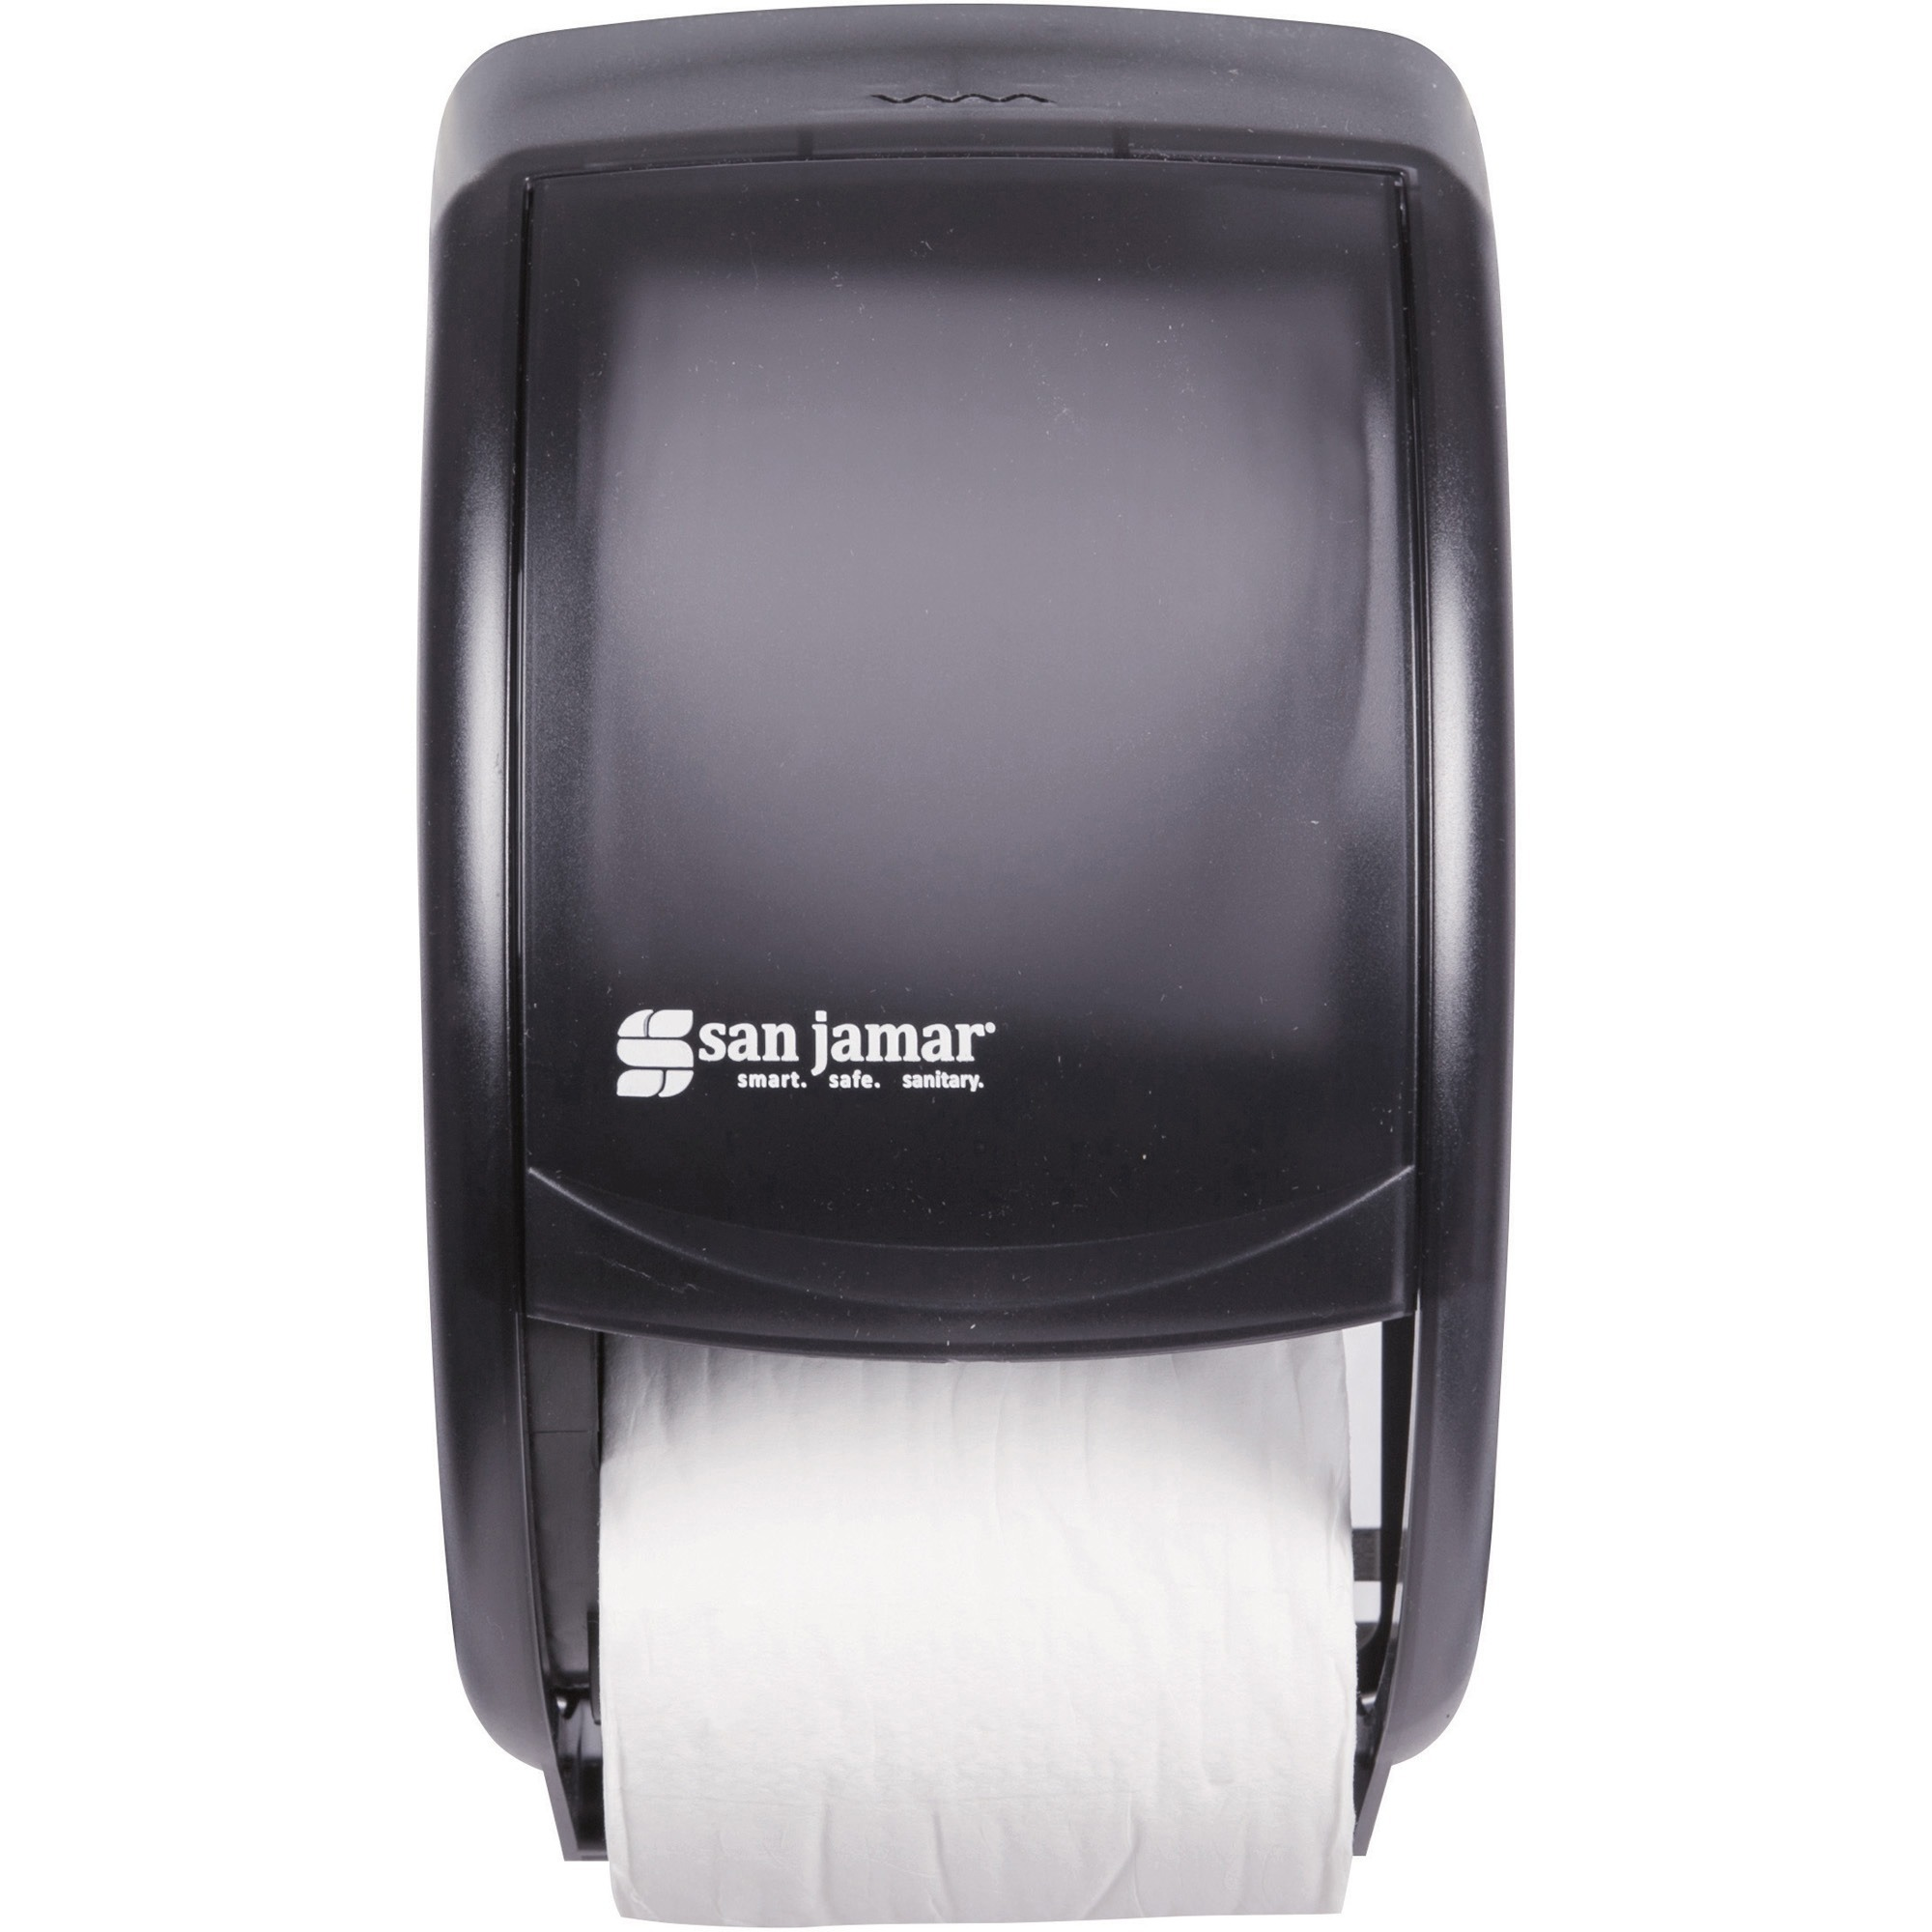 San Jamar, SJMR3500TBK, Duett Standard Bath Tissue Dispenser, 1 Each, Black